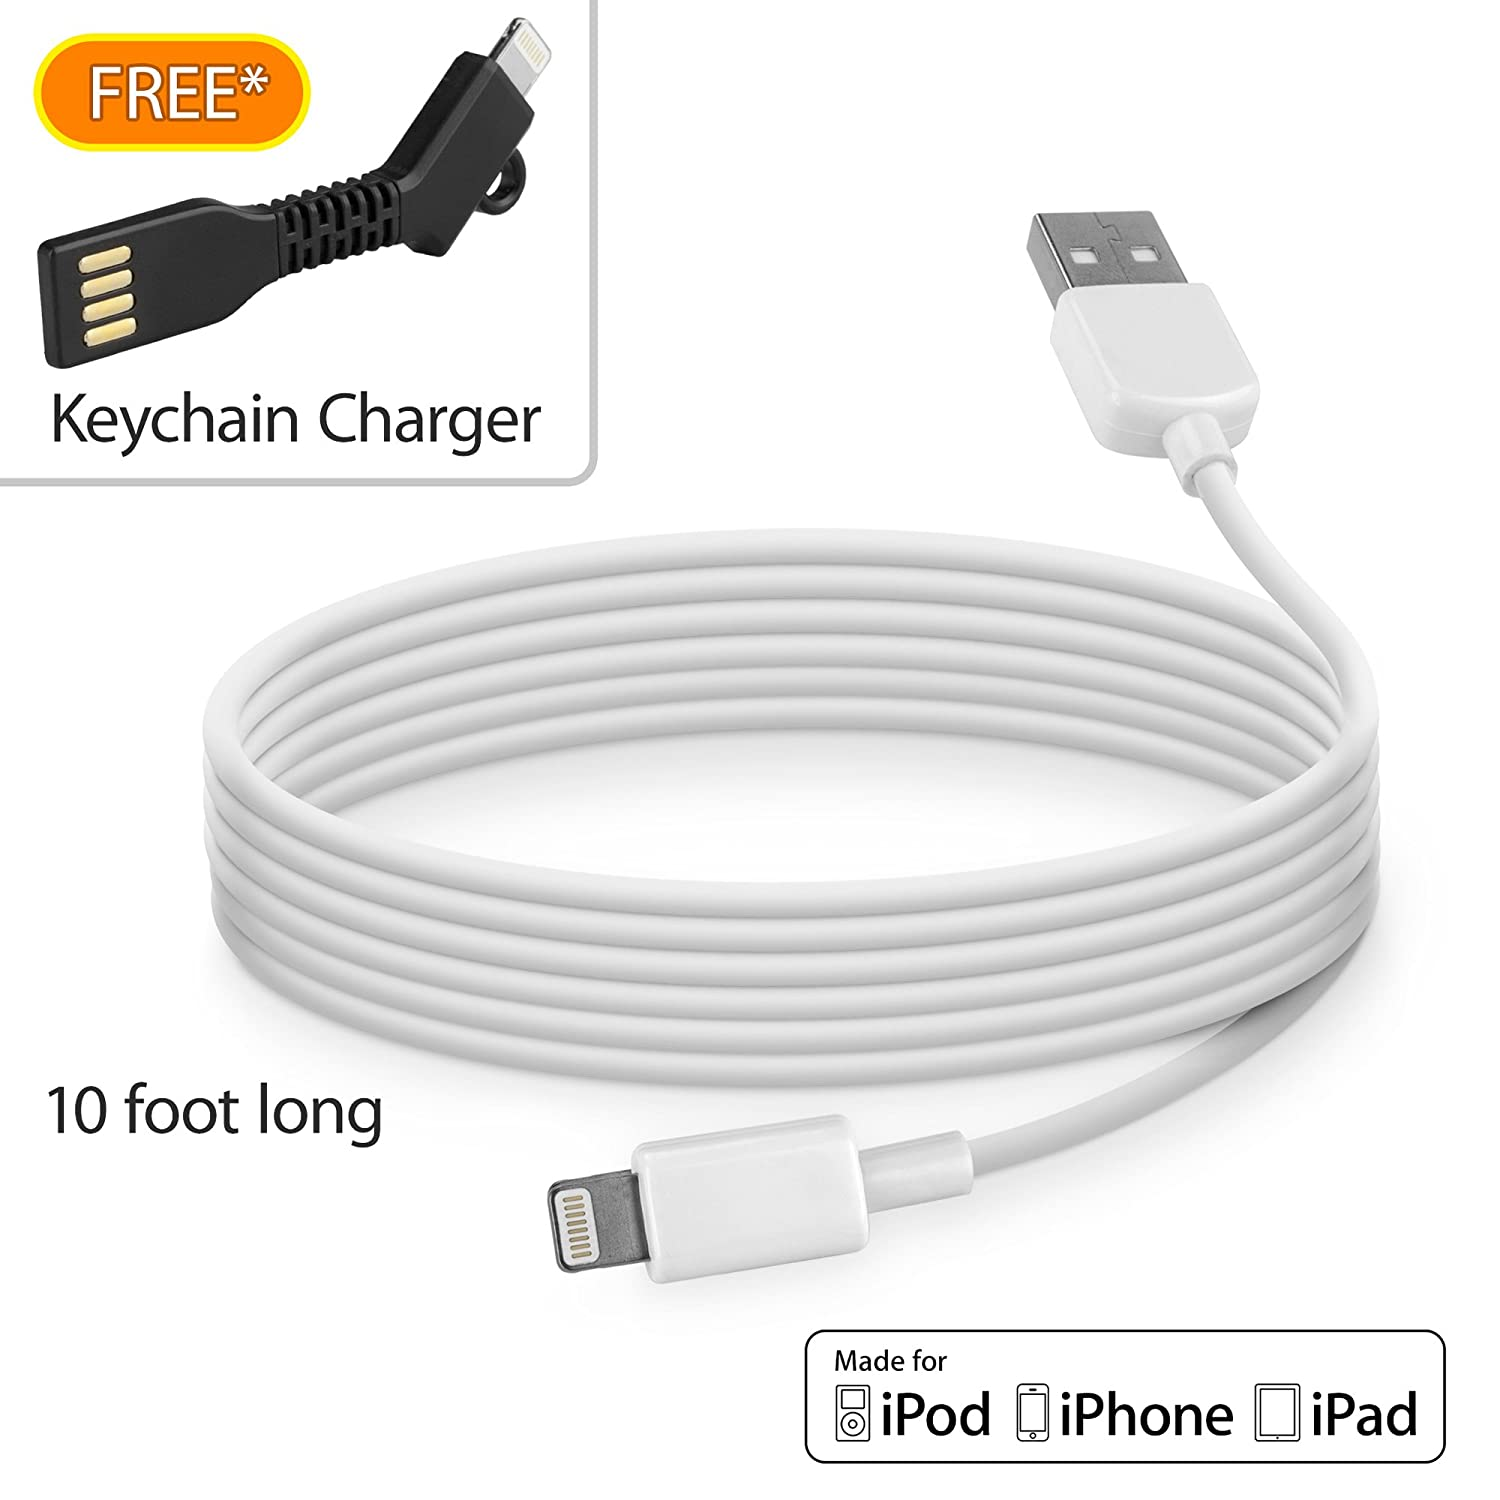 BoxWave iPhone 5 Cable Apple Certified MFI Lightning Charge Sync Cable for Apple iPhone 5-10 ft White BoxWave Corporation bw-877-4693-6956 USB Lightning Cable